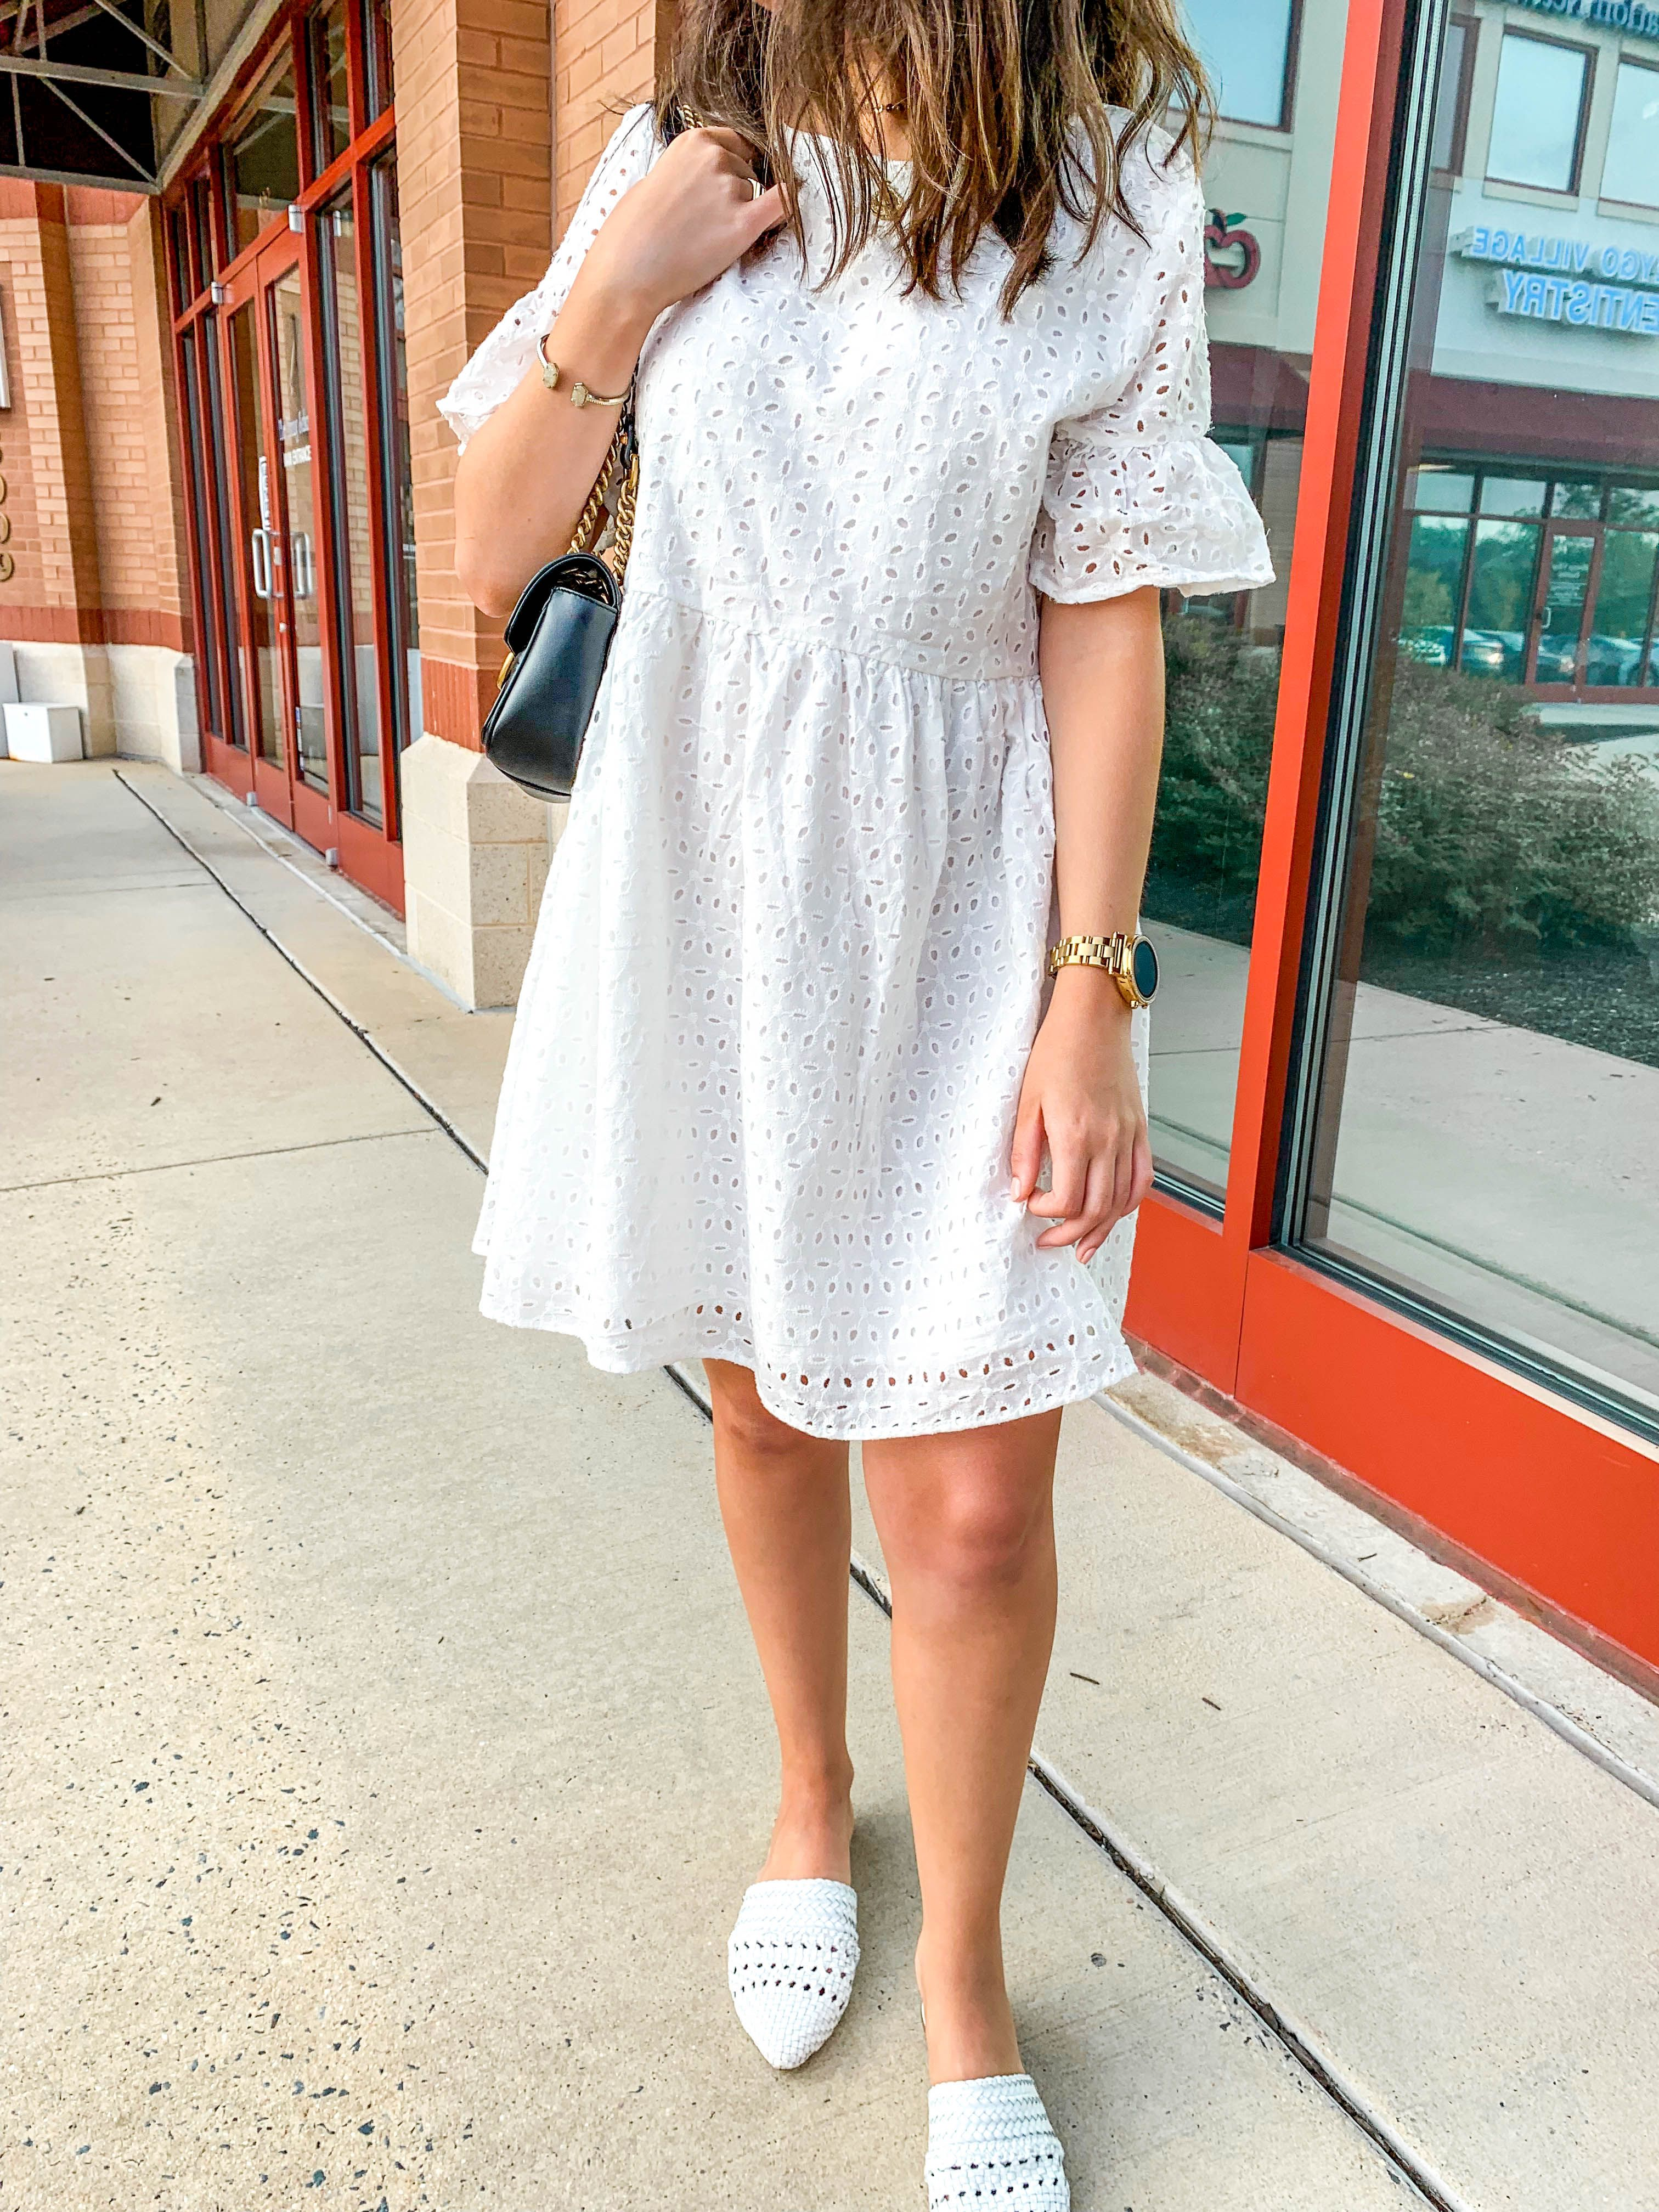 Babydoll Dresses The Silhouette I M Obsessed With This Summer The Dainty Details Fashion Babydoll Dress Outfit Dresses [ 4032 x 3024 Pixel ]